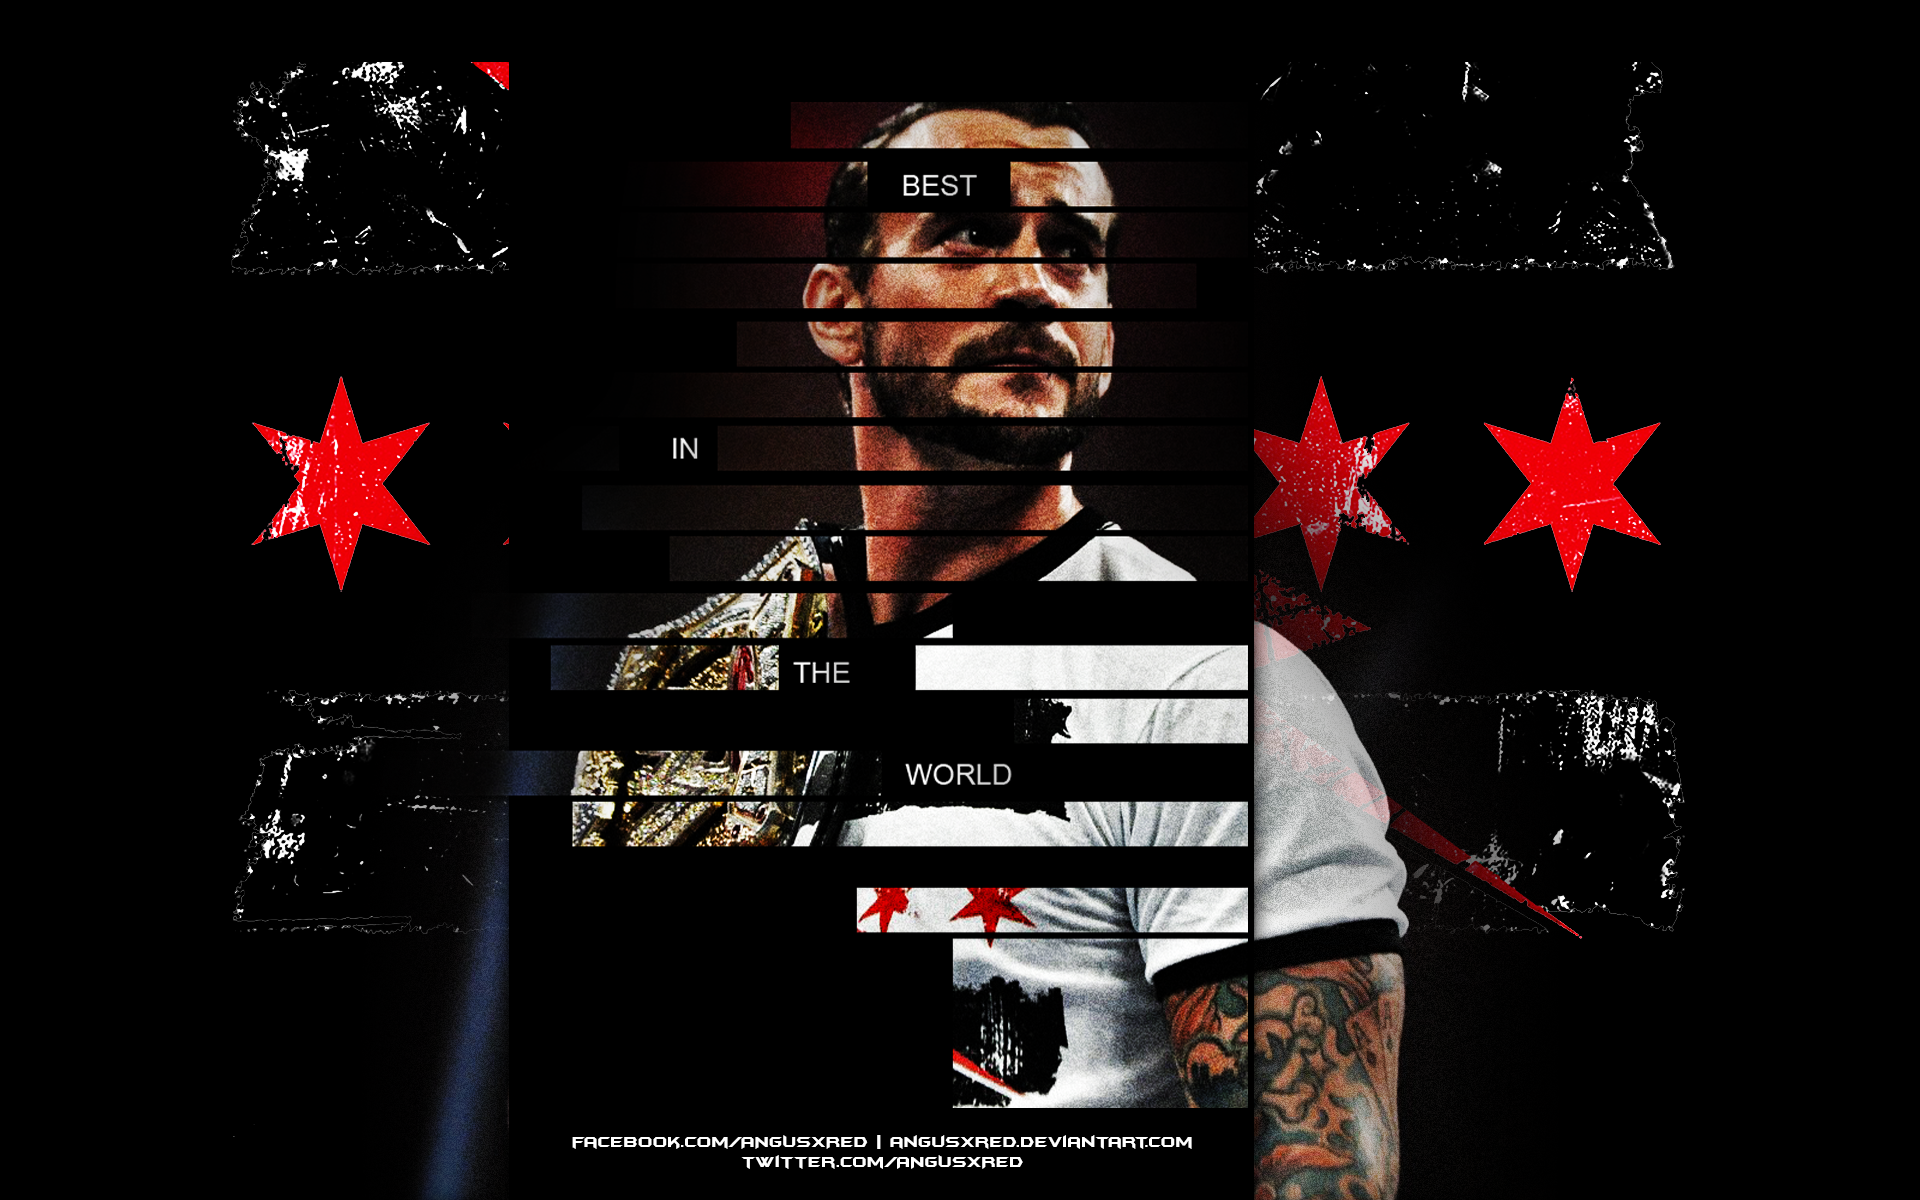 CM Punk - Best In The World - Обои By AR